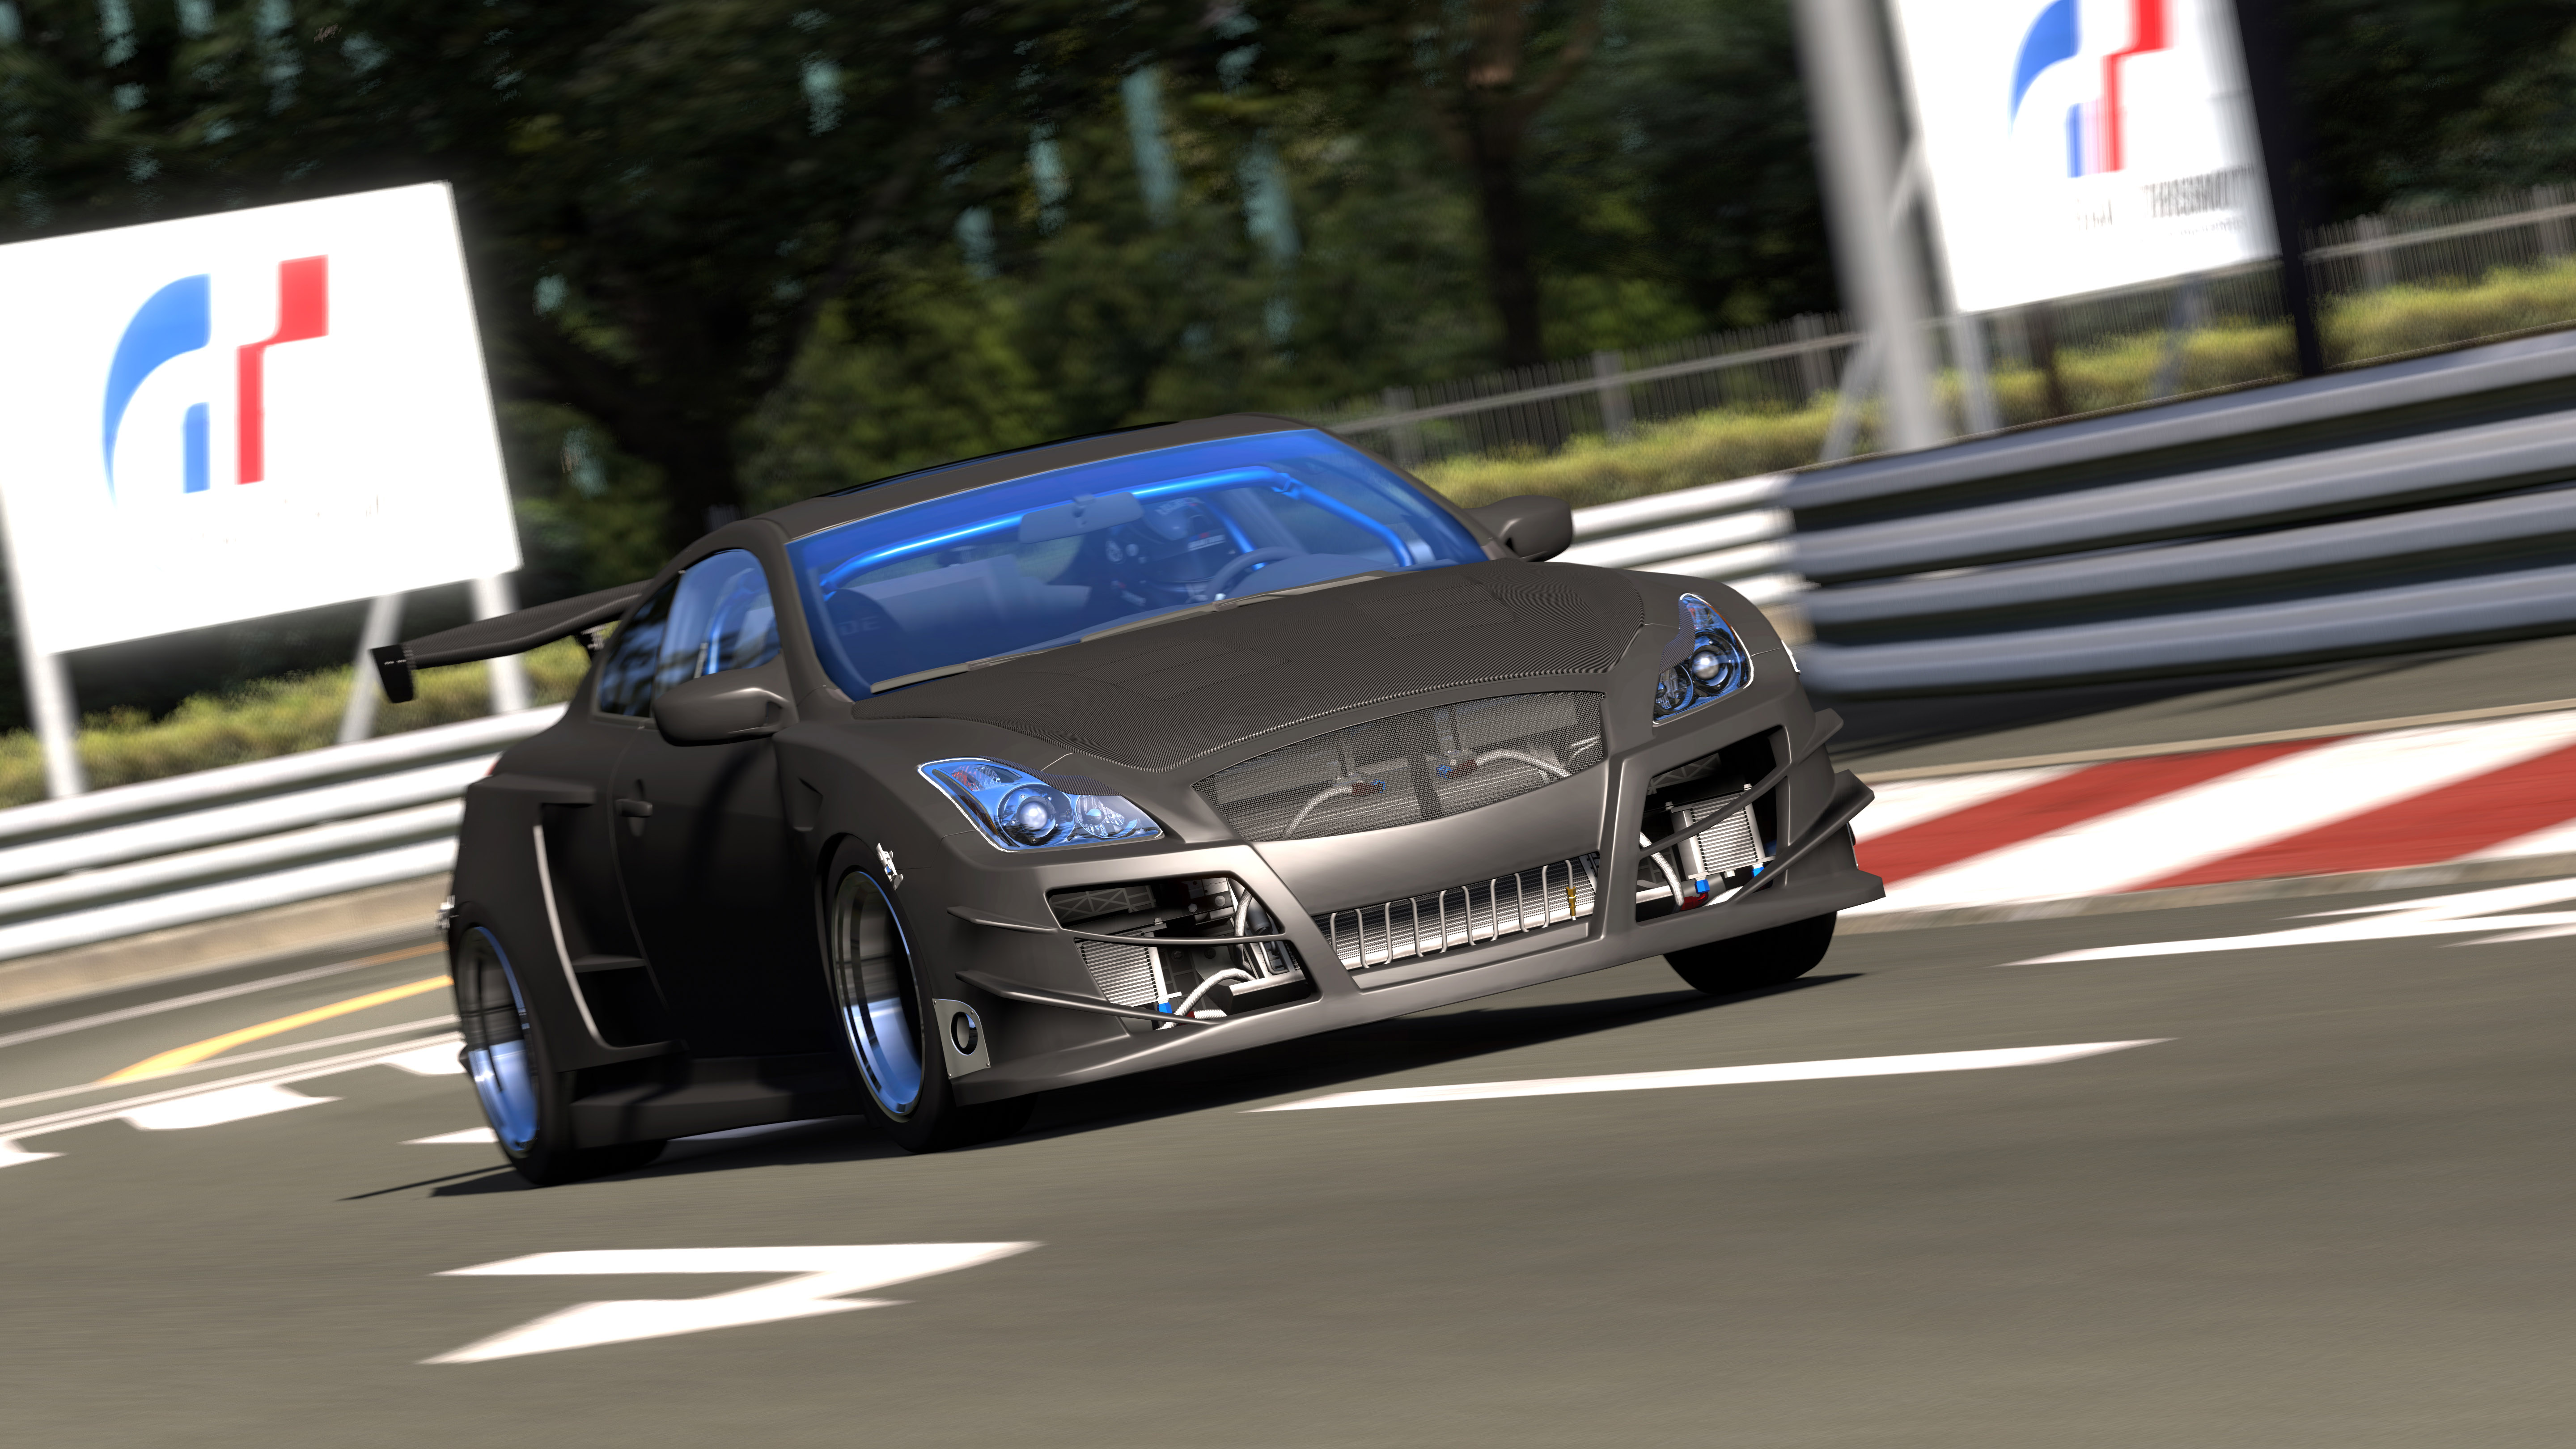 gran turismo 5 ultra high resolution previews sim racing news. Black Bedroom Furniture Sets. Home Design Ideas